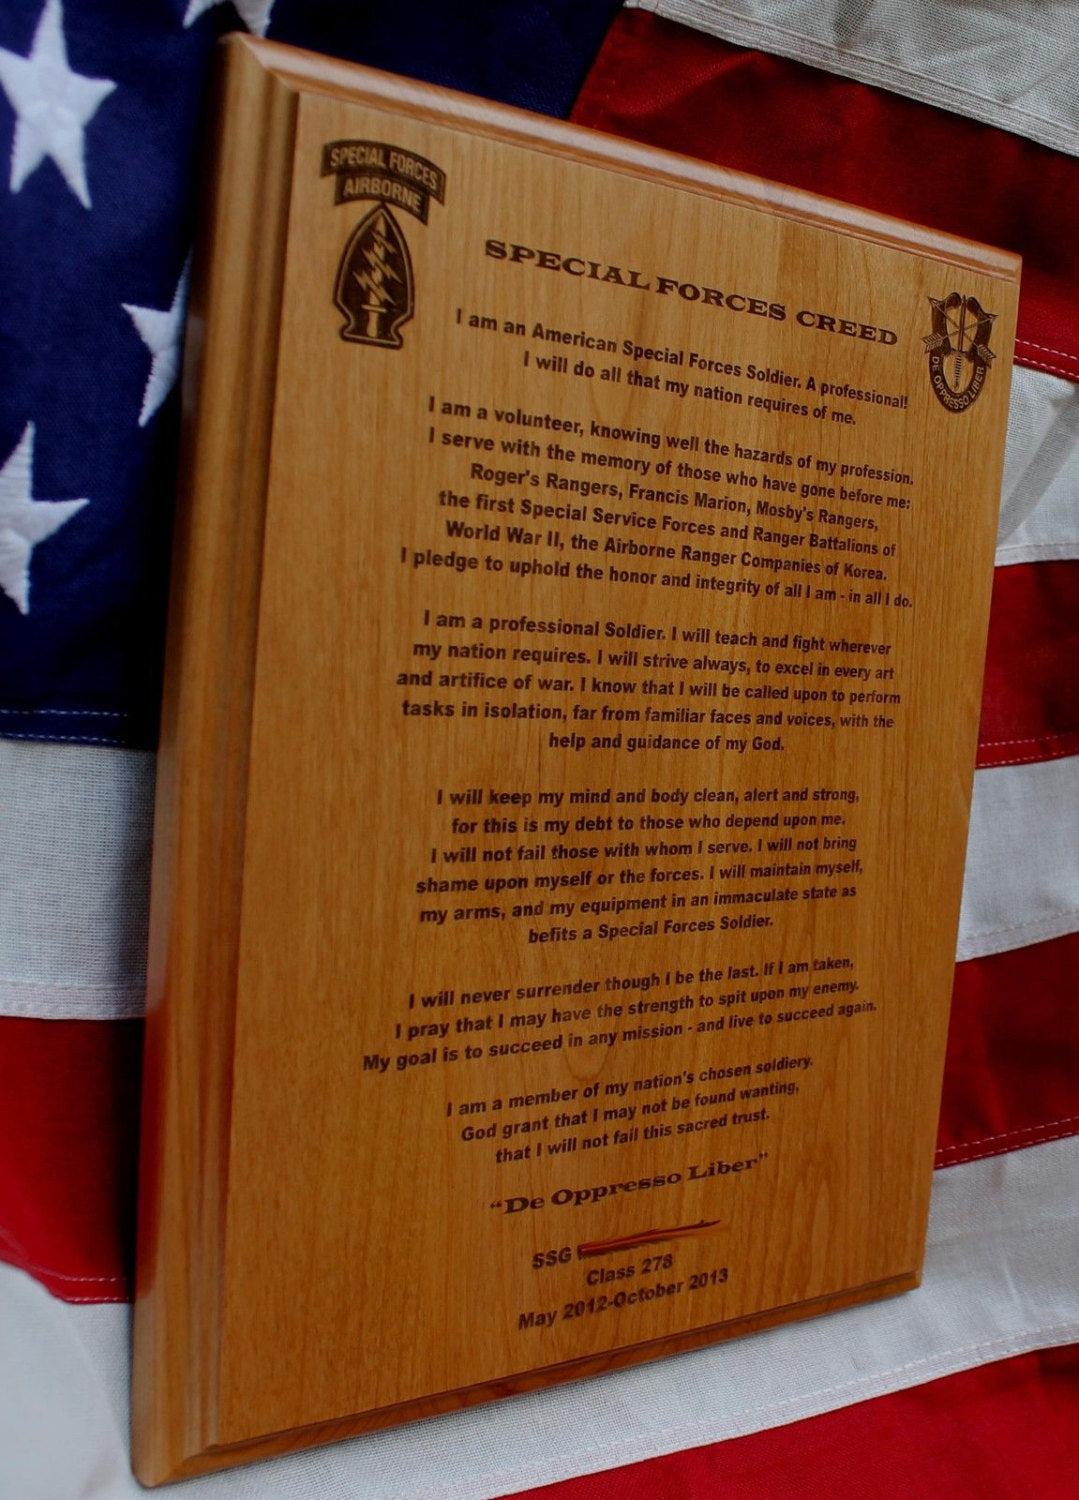 Special Forces Creed Plaque, solid wood